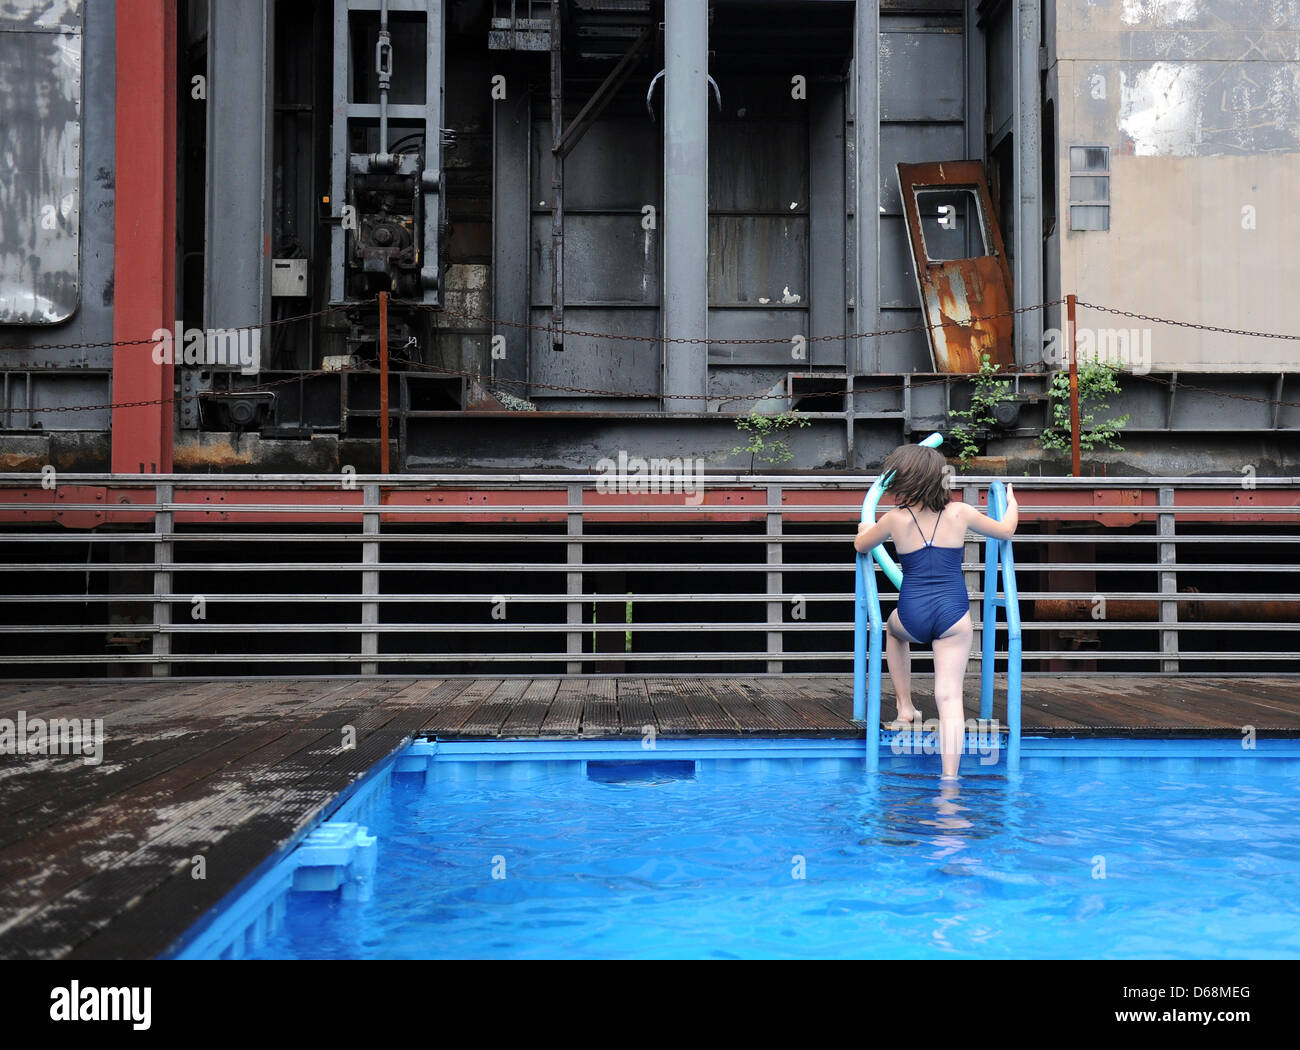 A girl climbs out of the pool at the Zollverein Coal Mine Industrial Complex in Essen, Germany, 18 July 2012. The - Stock Image